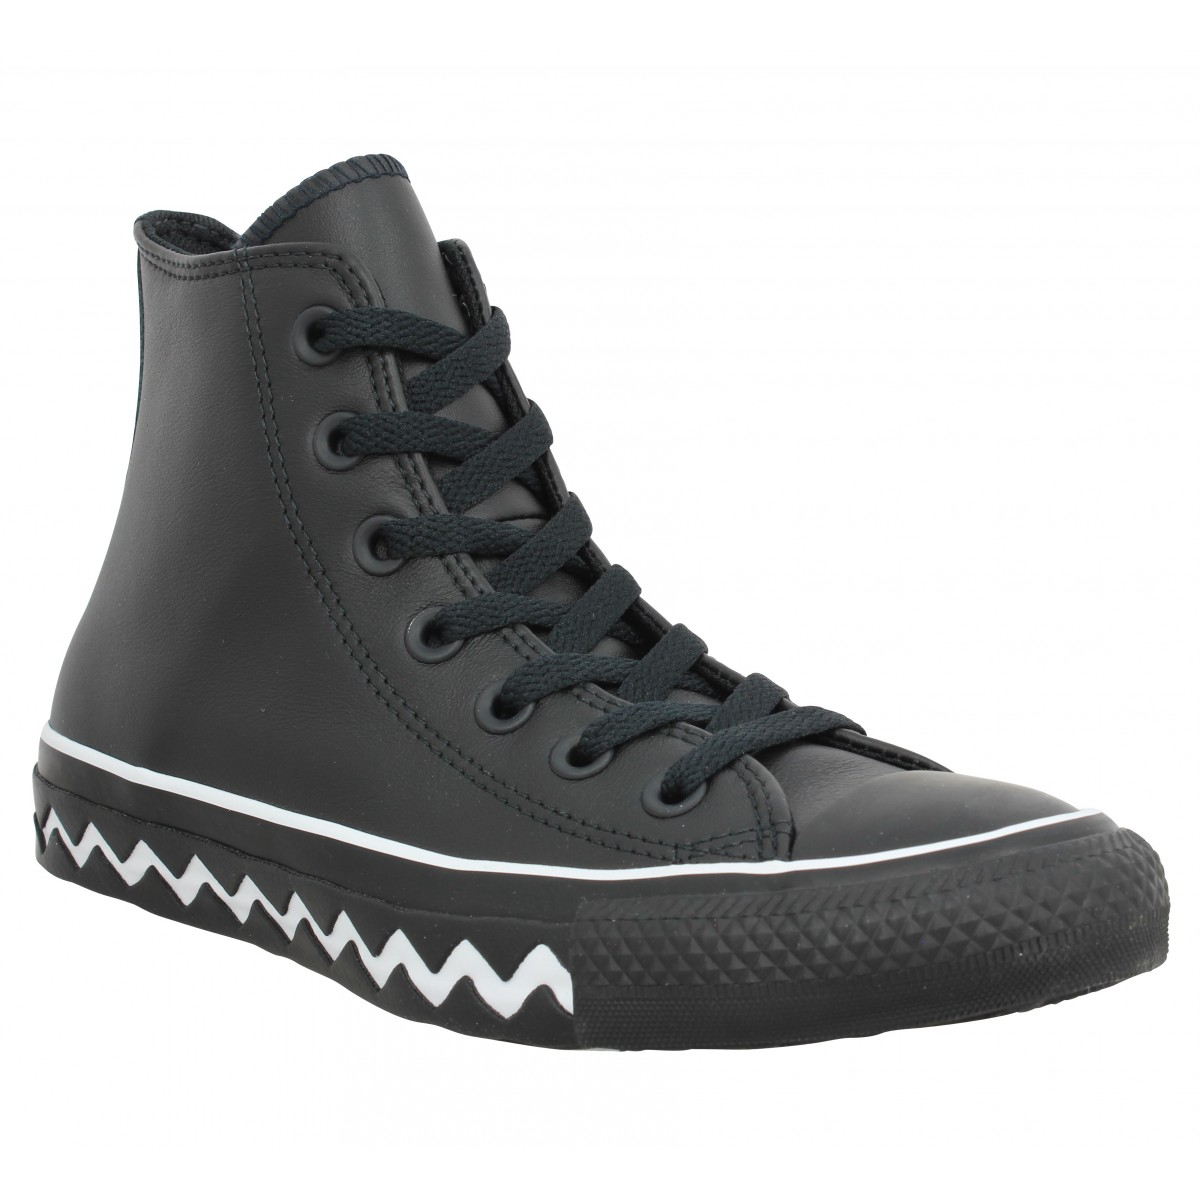 Baskets CONVERSE Chuck Taylor All Star Hi Mission cuir Femme Noir